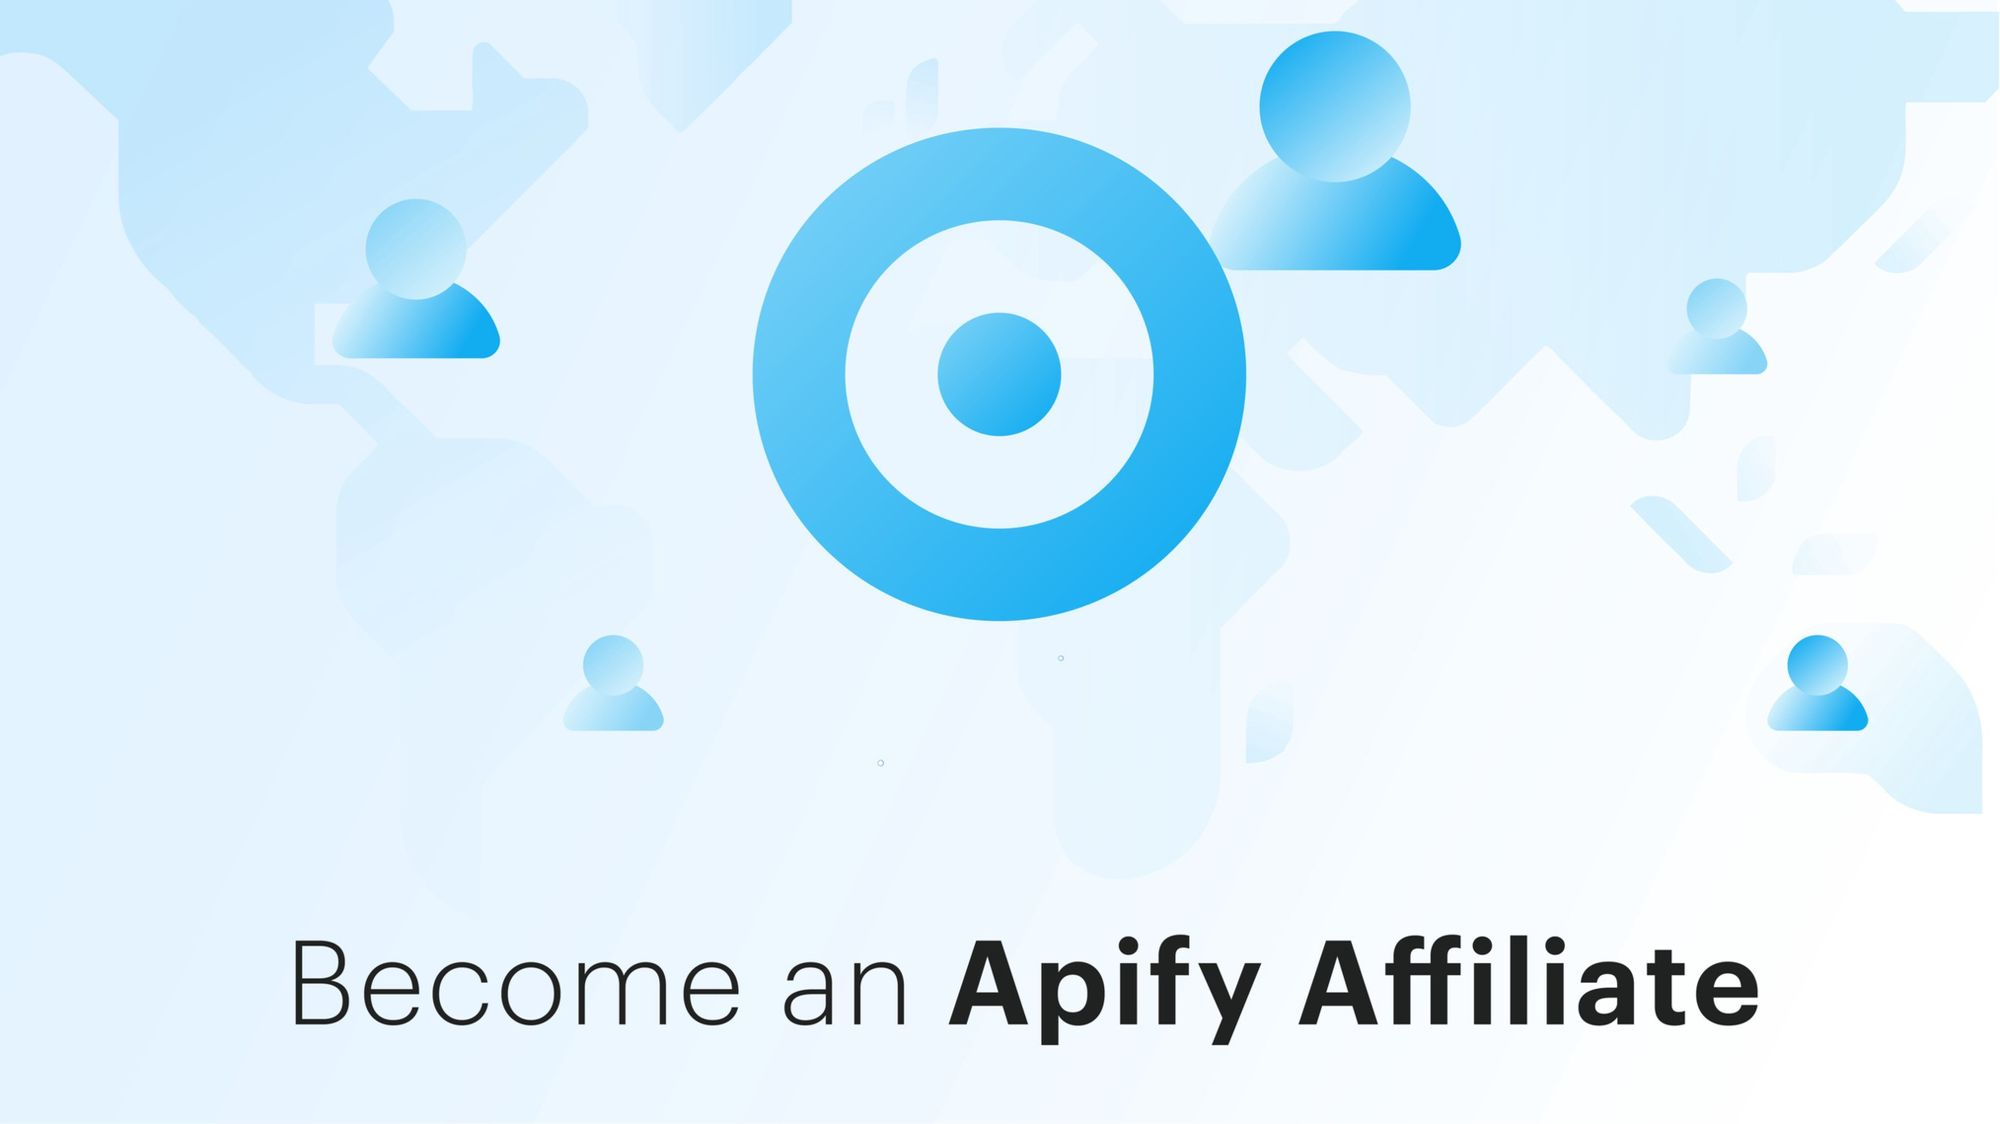 Become an Apify Affiliate